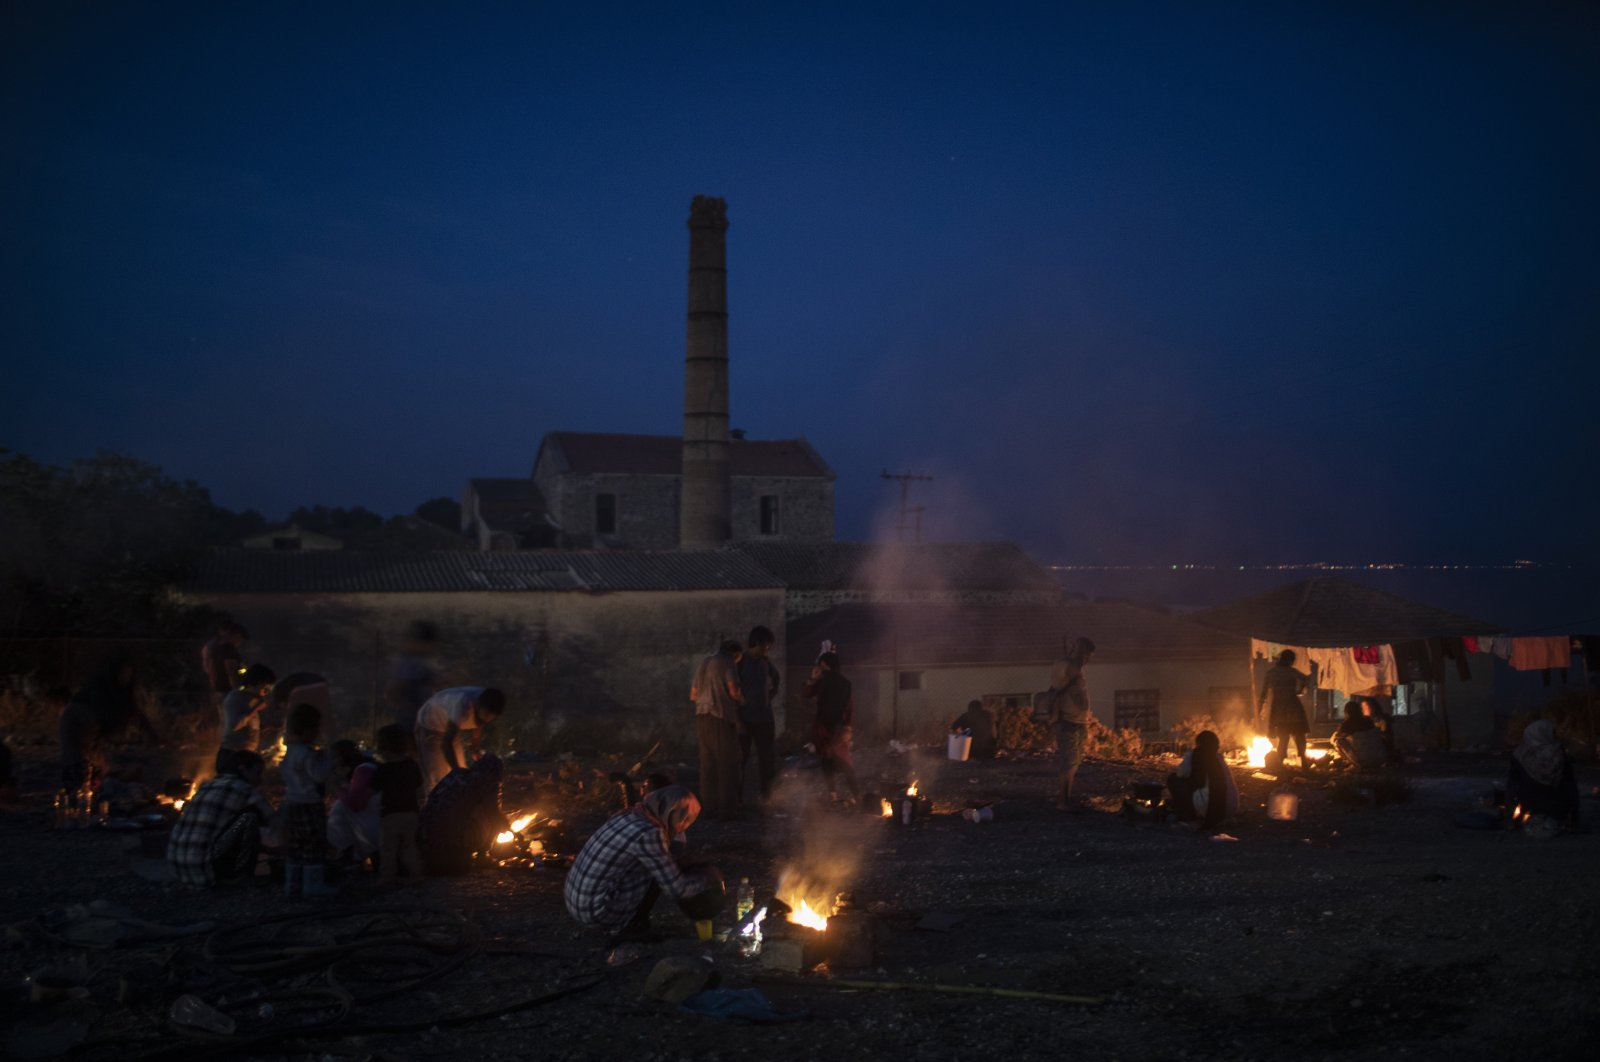 Refugees and migrants from the destroyed Moria camp cook over makeshift fires, on the island of Lesbos, Greece, Sept. 17, 2020. (AP Photo)